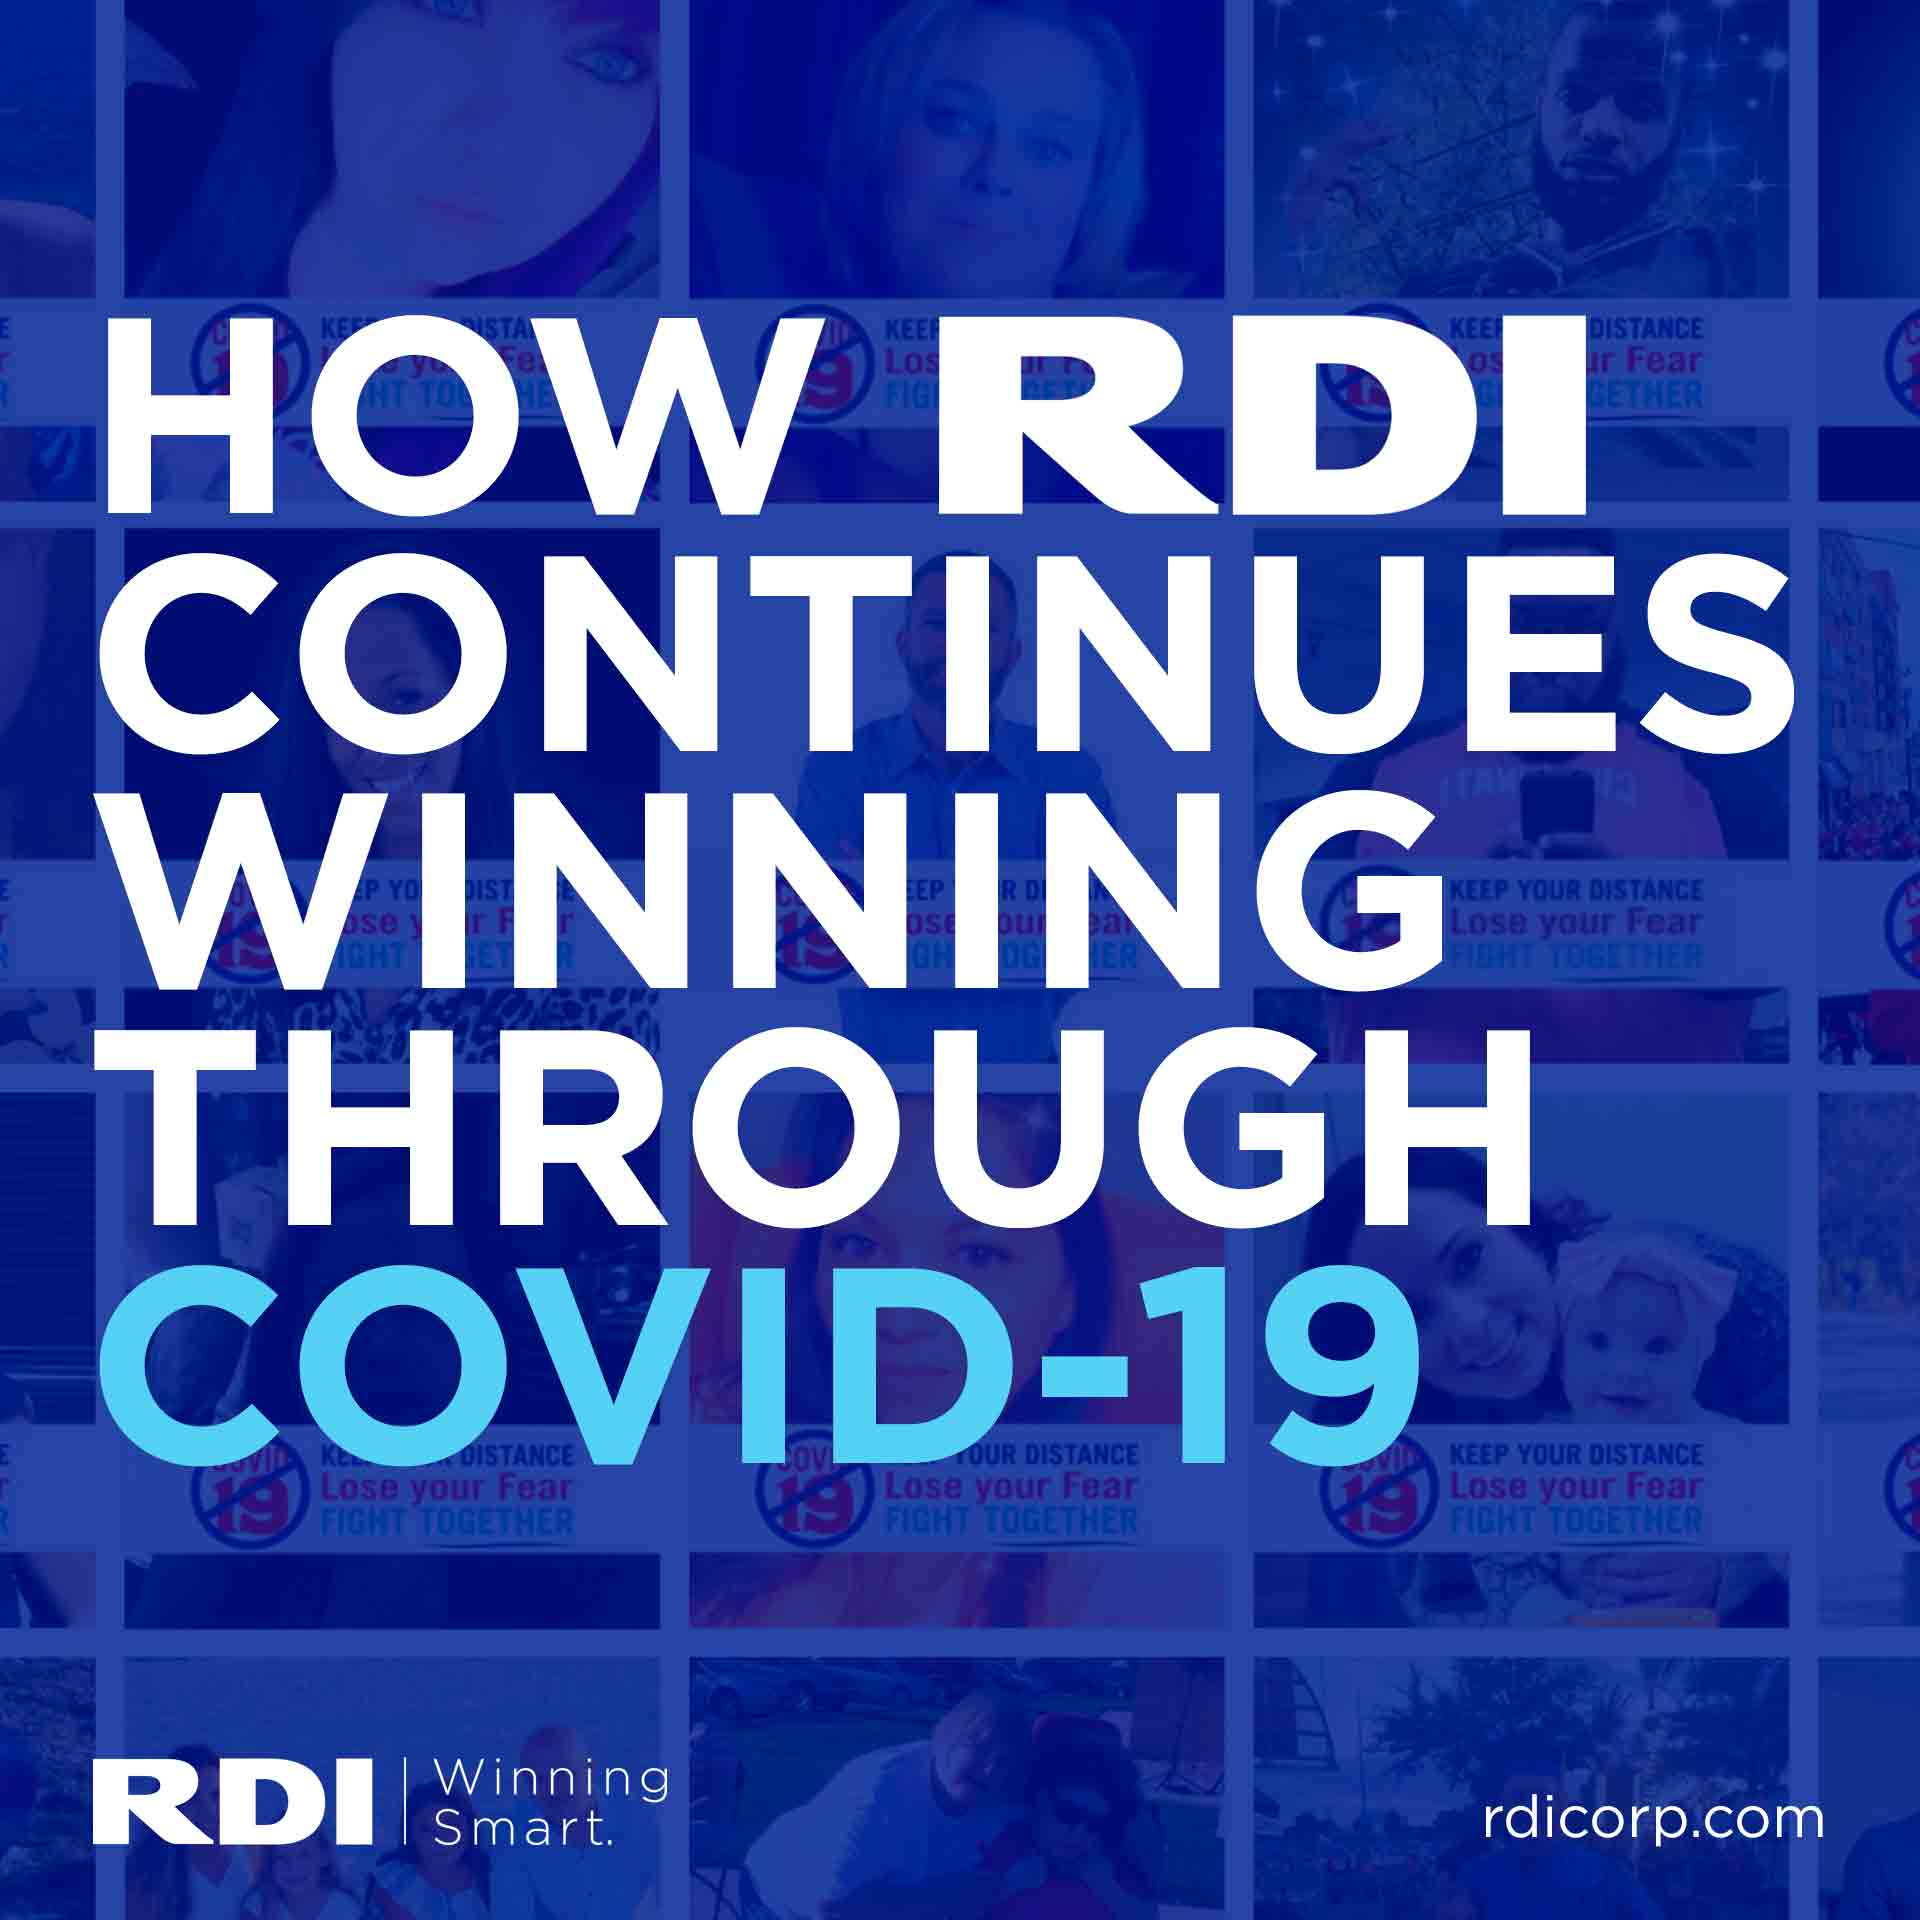 RDI Corporation - COVID-19 Fight Together